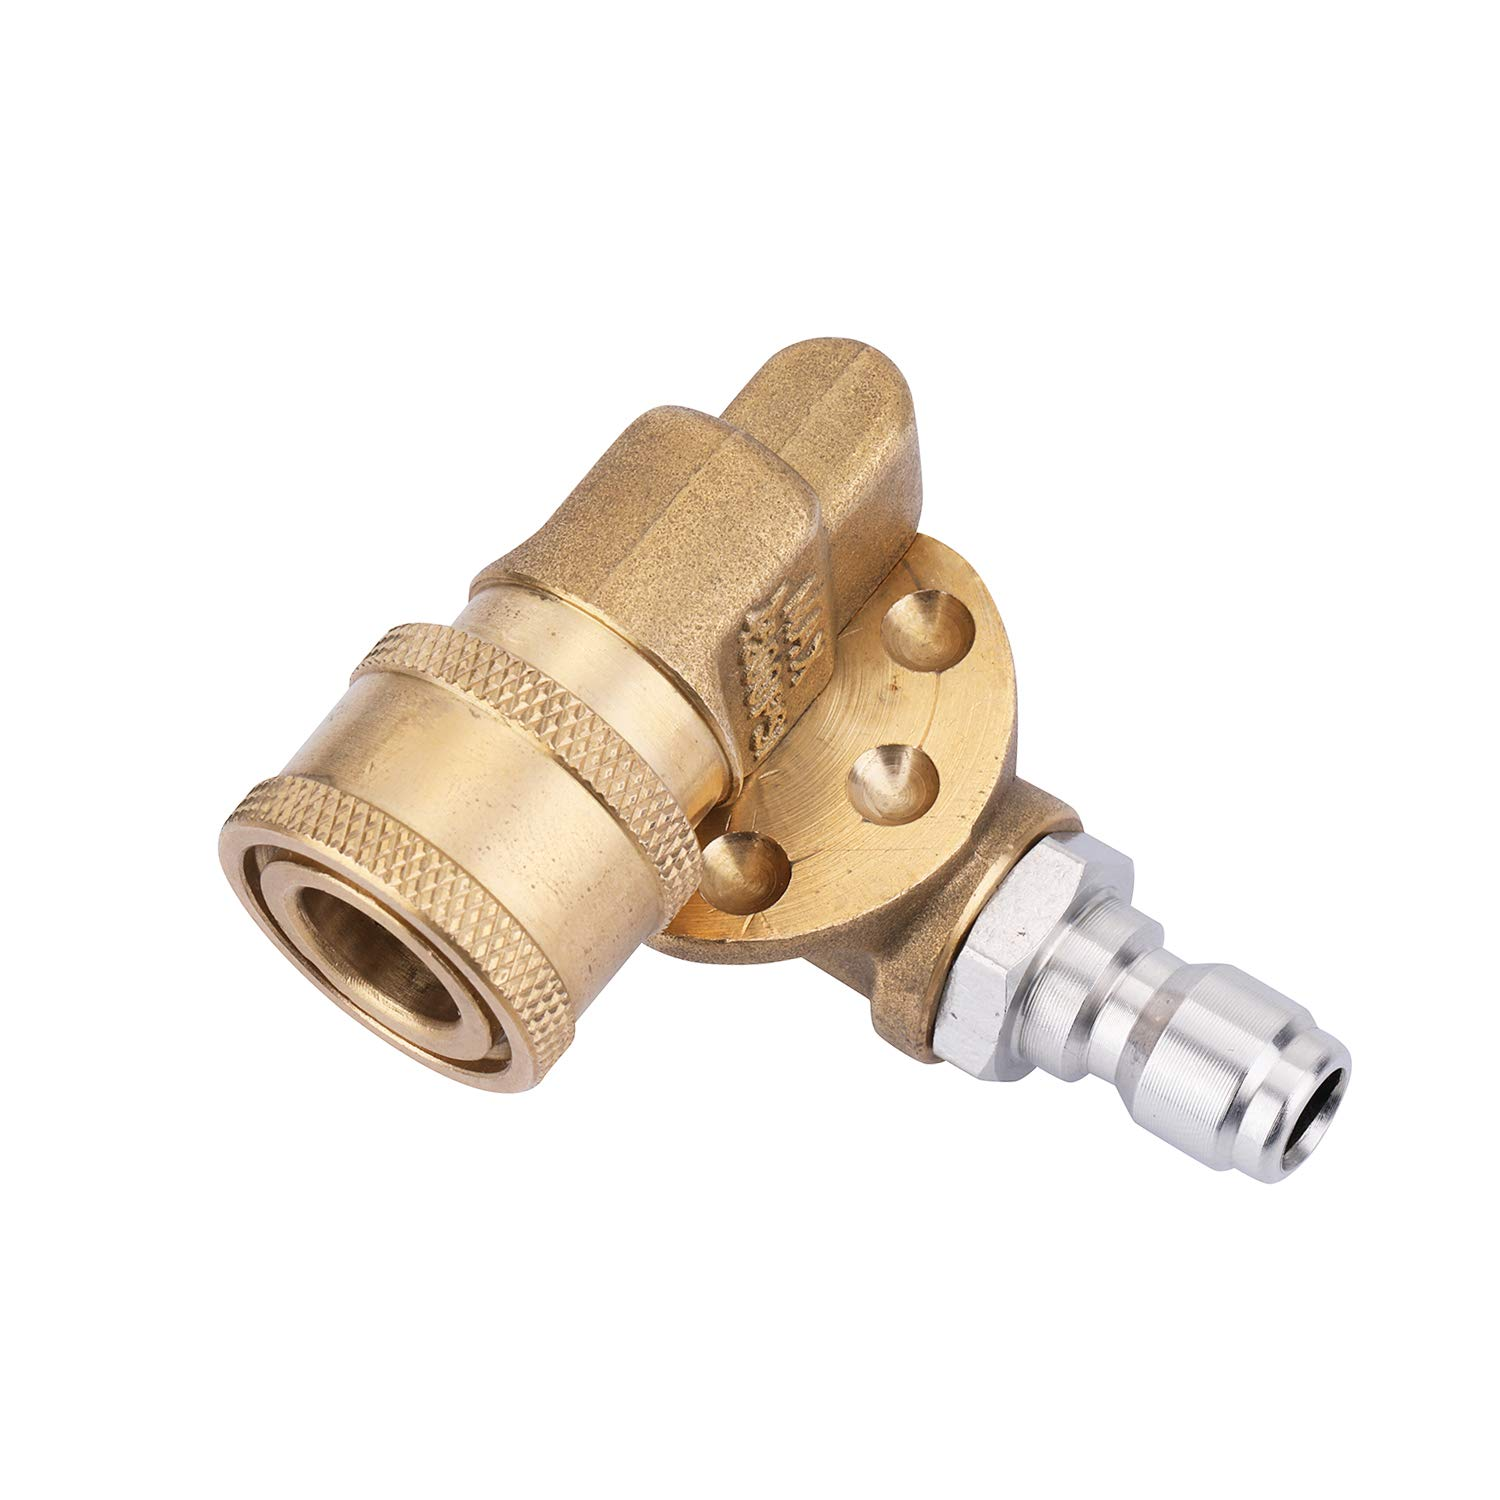 Challco Quick Connecting Pivoting Coupler 180 Degree with 5 Angles for Pressure Washer Spray Nozzle, Cleaning Hard to Reach Area Max 4500 PSI 1/4 Inch Plug